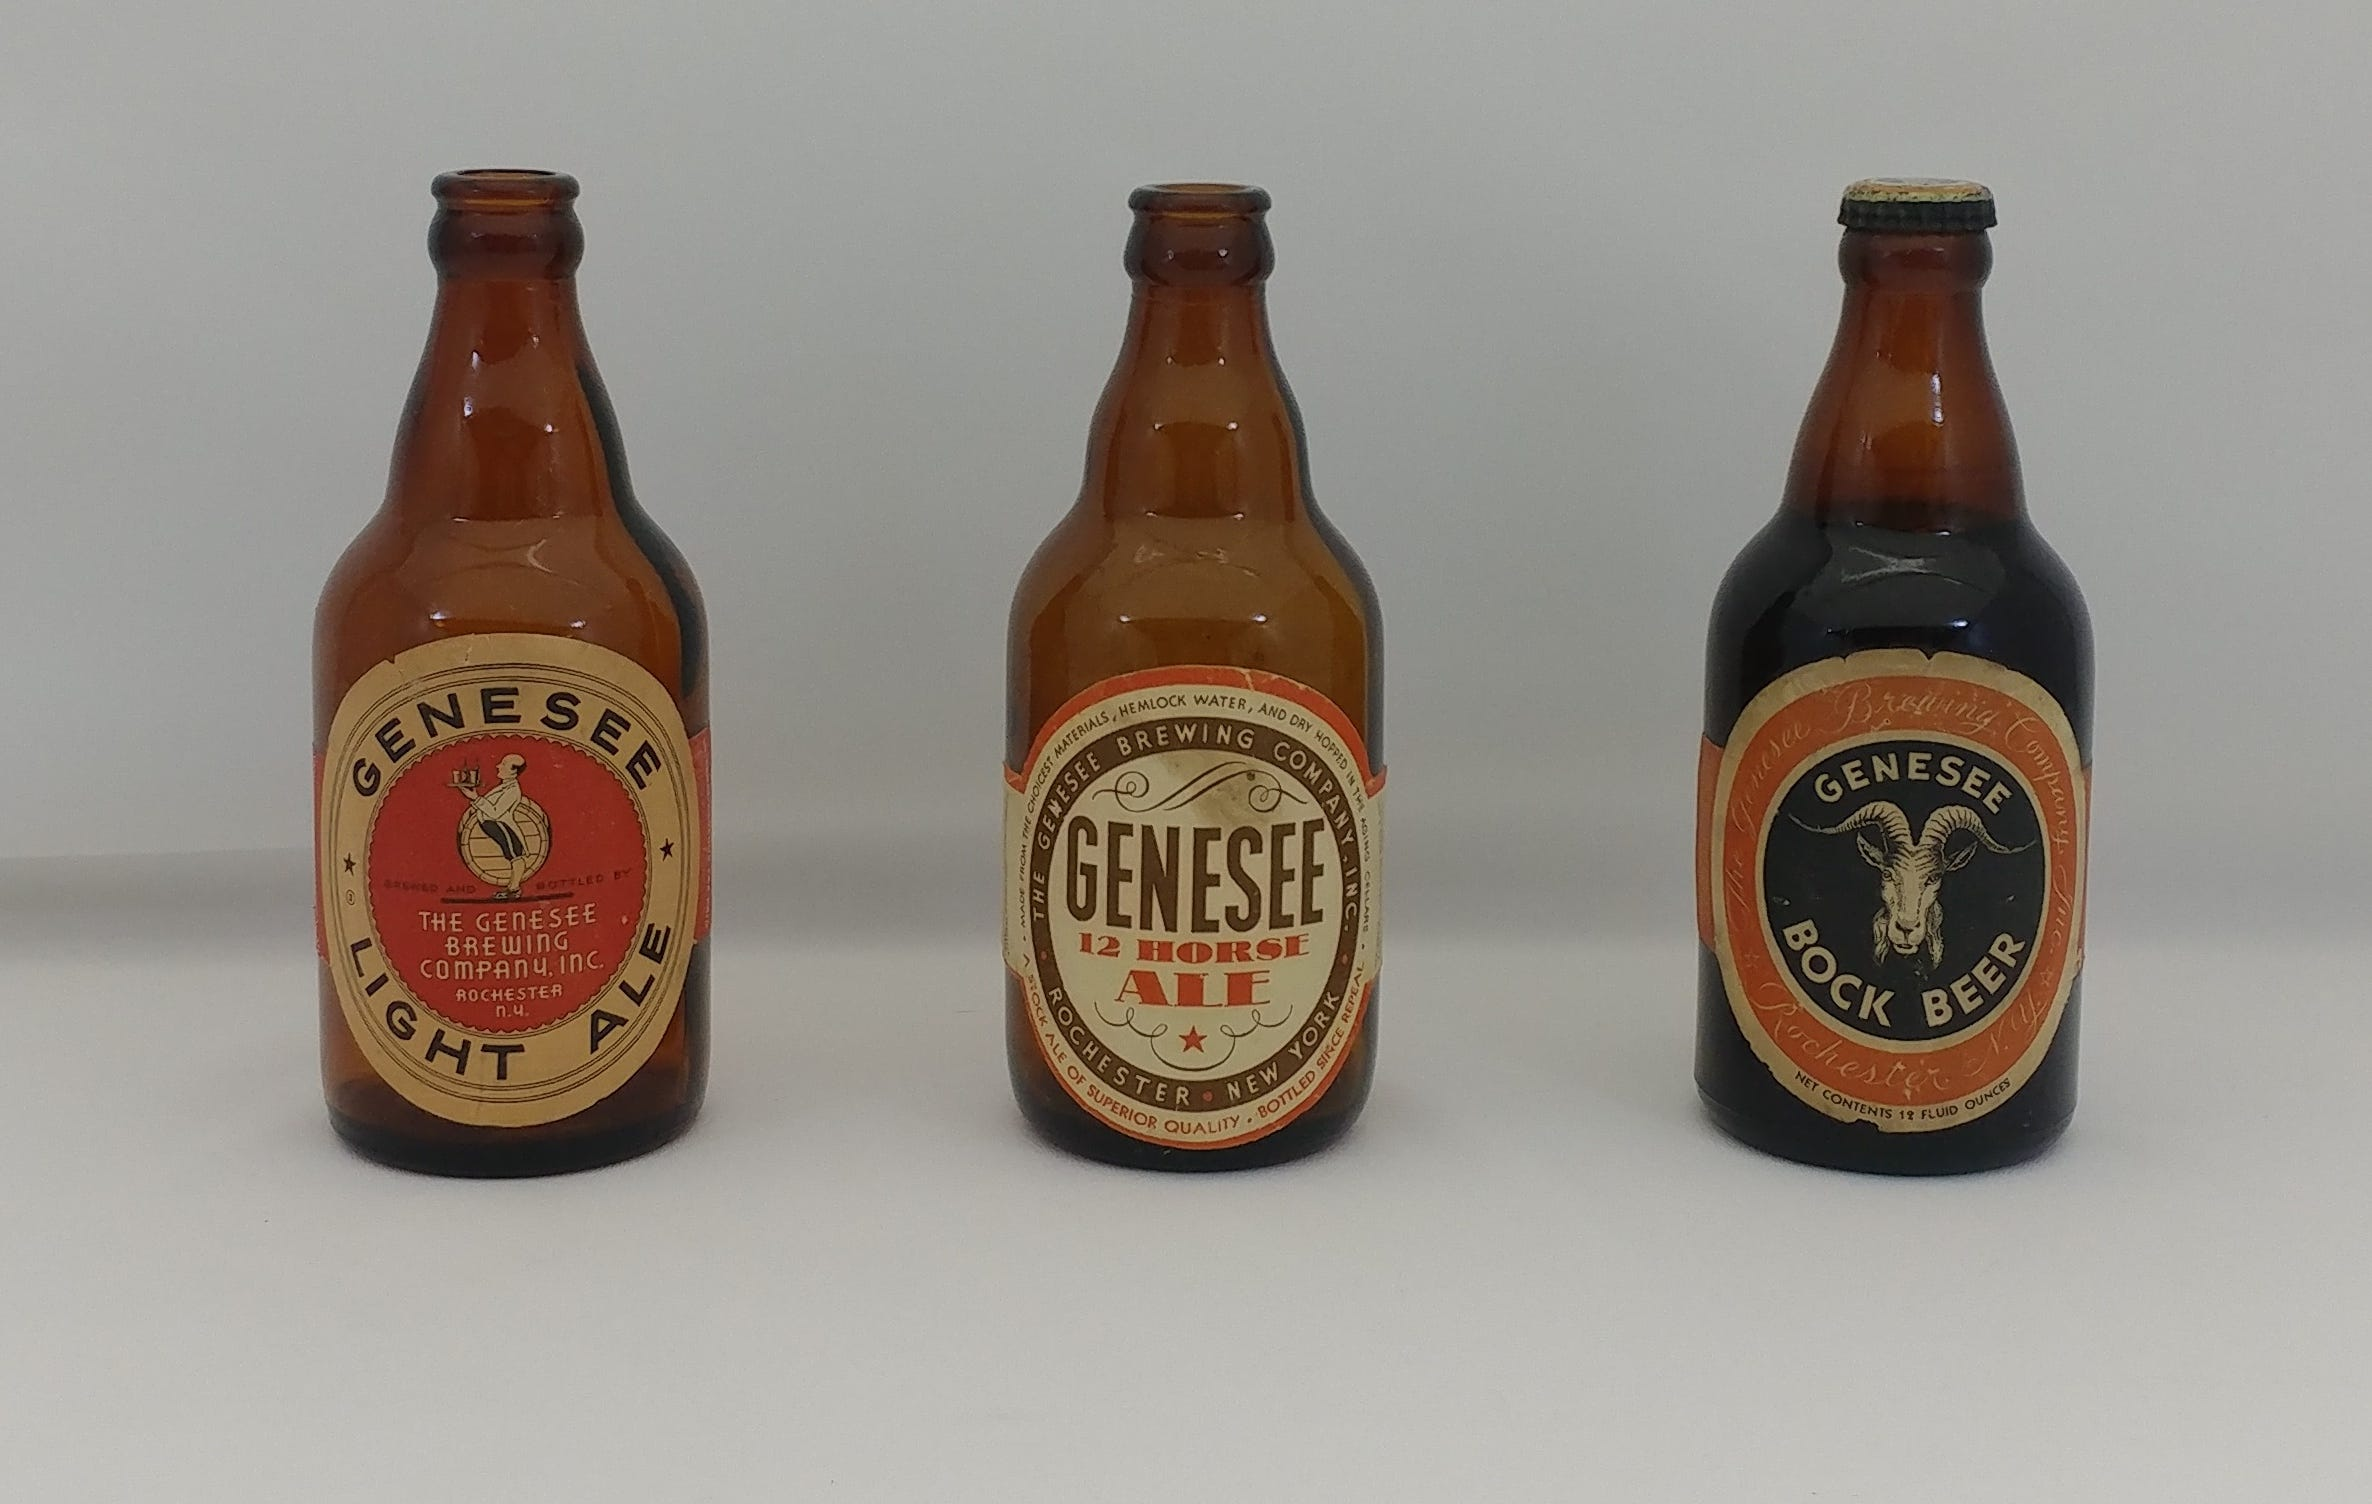 Three Genesee steinie (or stubby) bottles: Genesee Light Ale (1938 to 1941), 12 Horse Ale (1933 to 1936), and Bock (1933 to 1936).